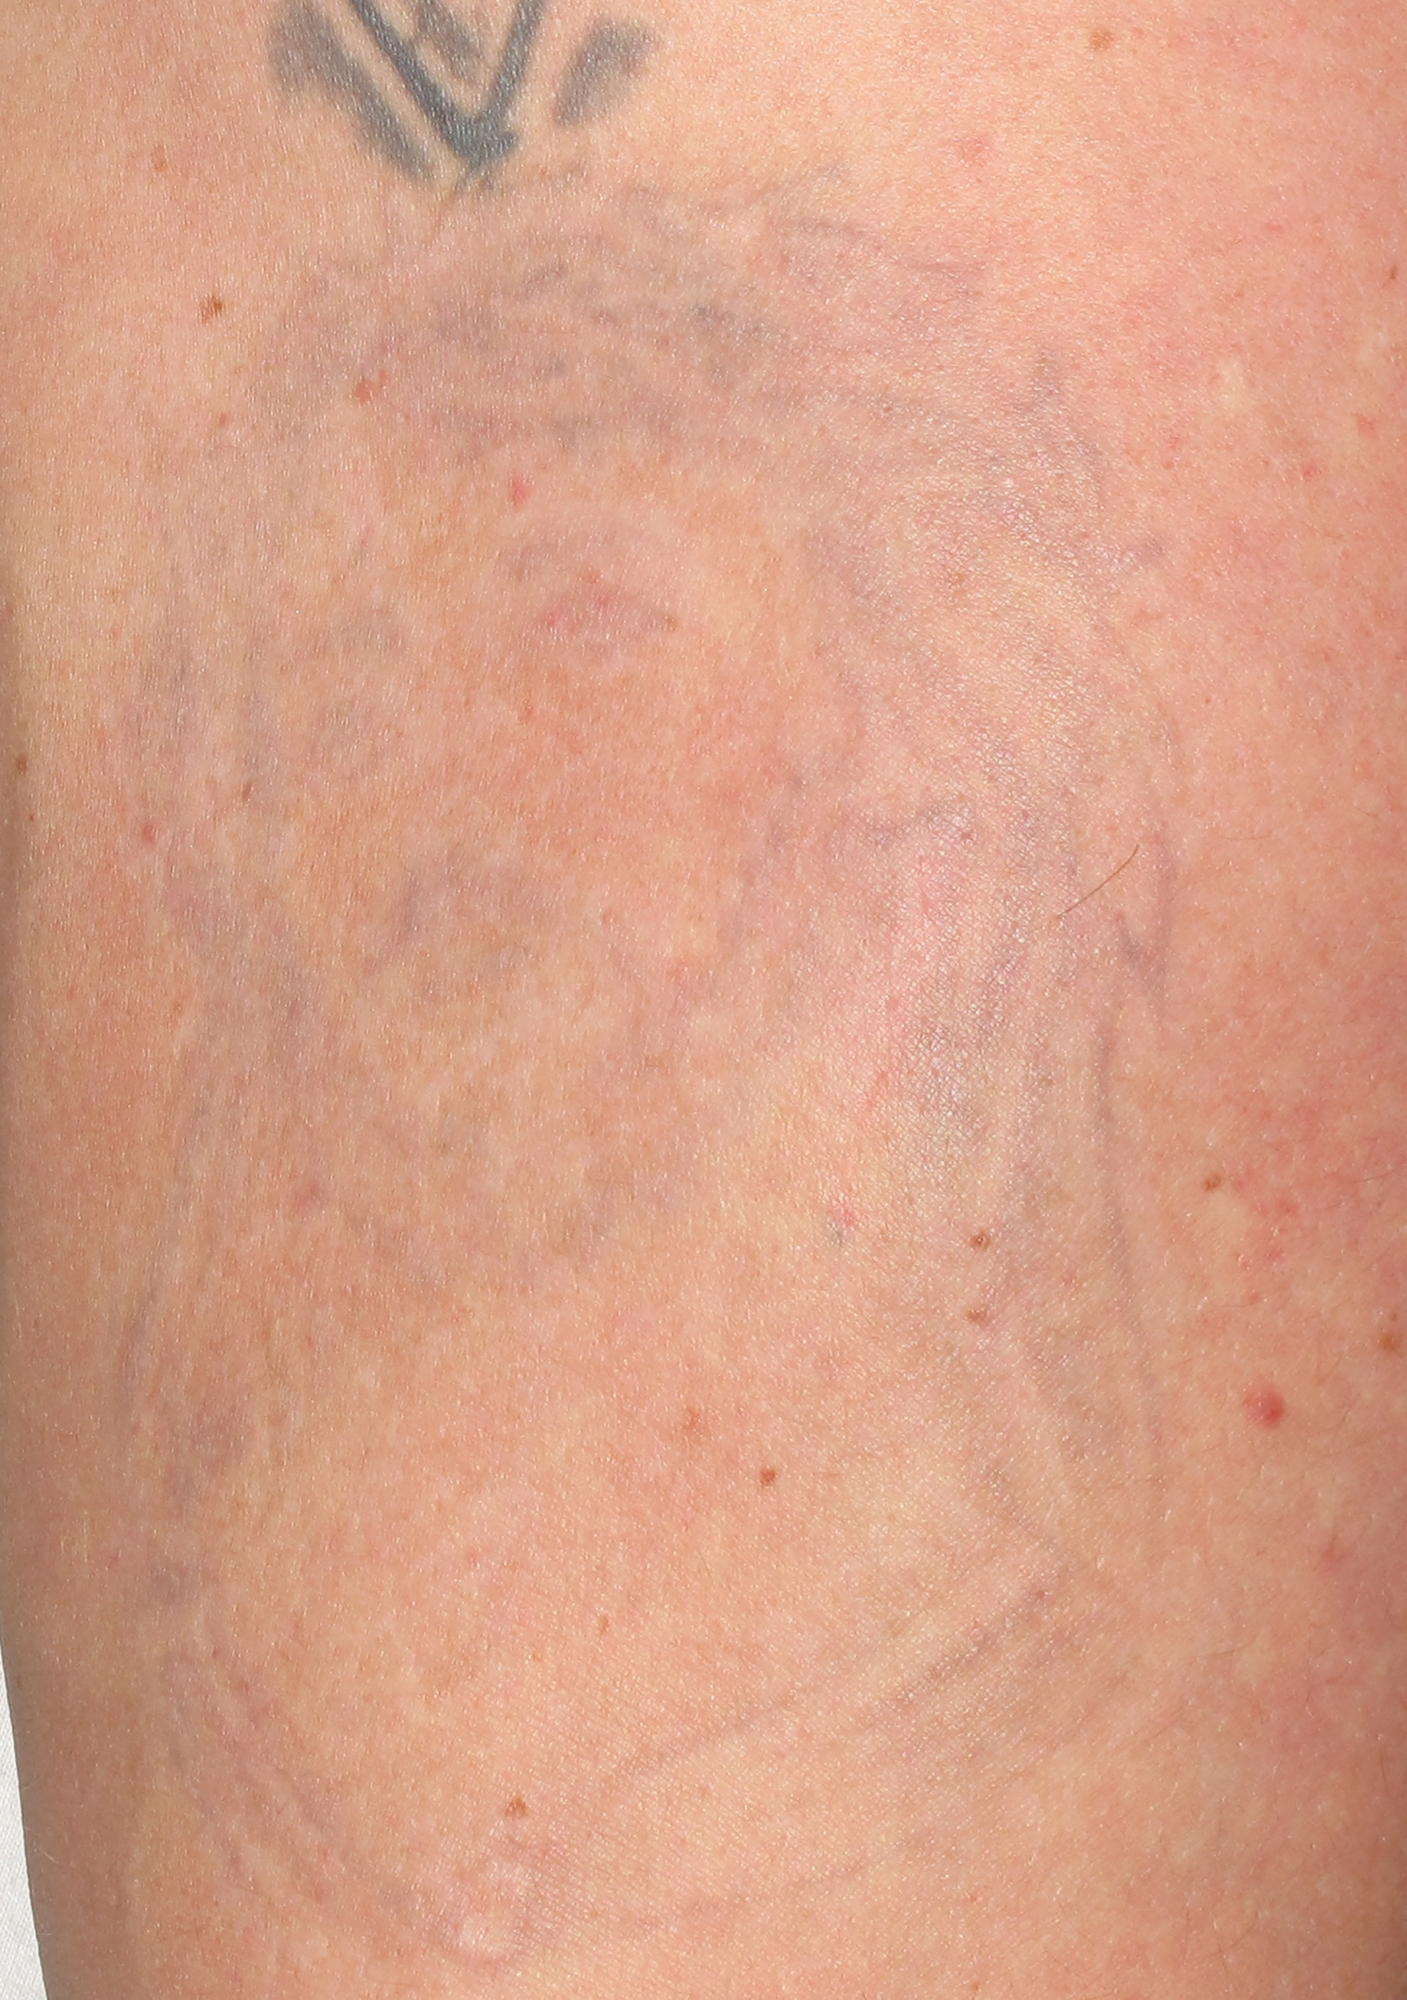 tattoo after treatment with the Spectra laser in Altoona and State College, Pennsylvania